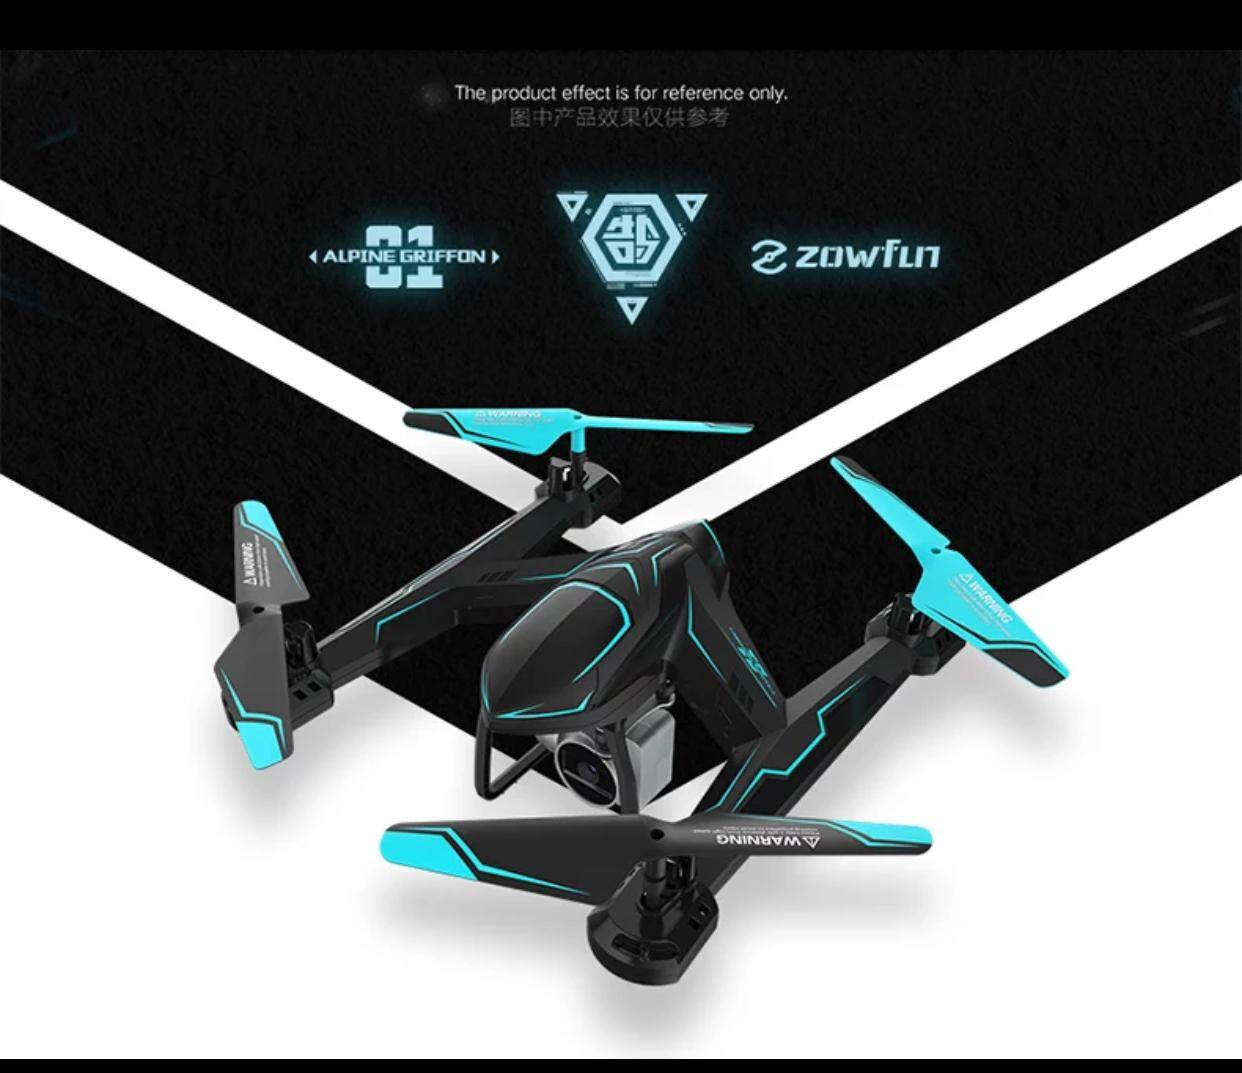 Ag-01d [ready Stock] Drone Quadcopter Wifi Fpv 720p Camera 720p Hd Altitude Hold (20 Mins Fly Time Appx) By 89 Bear Studio.